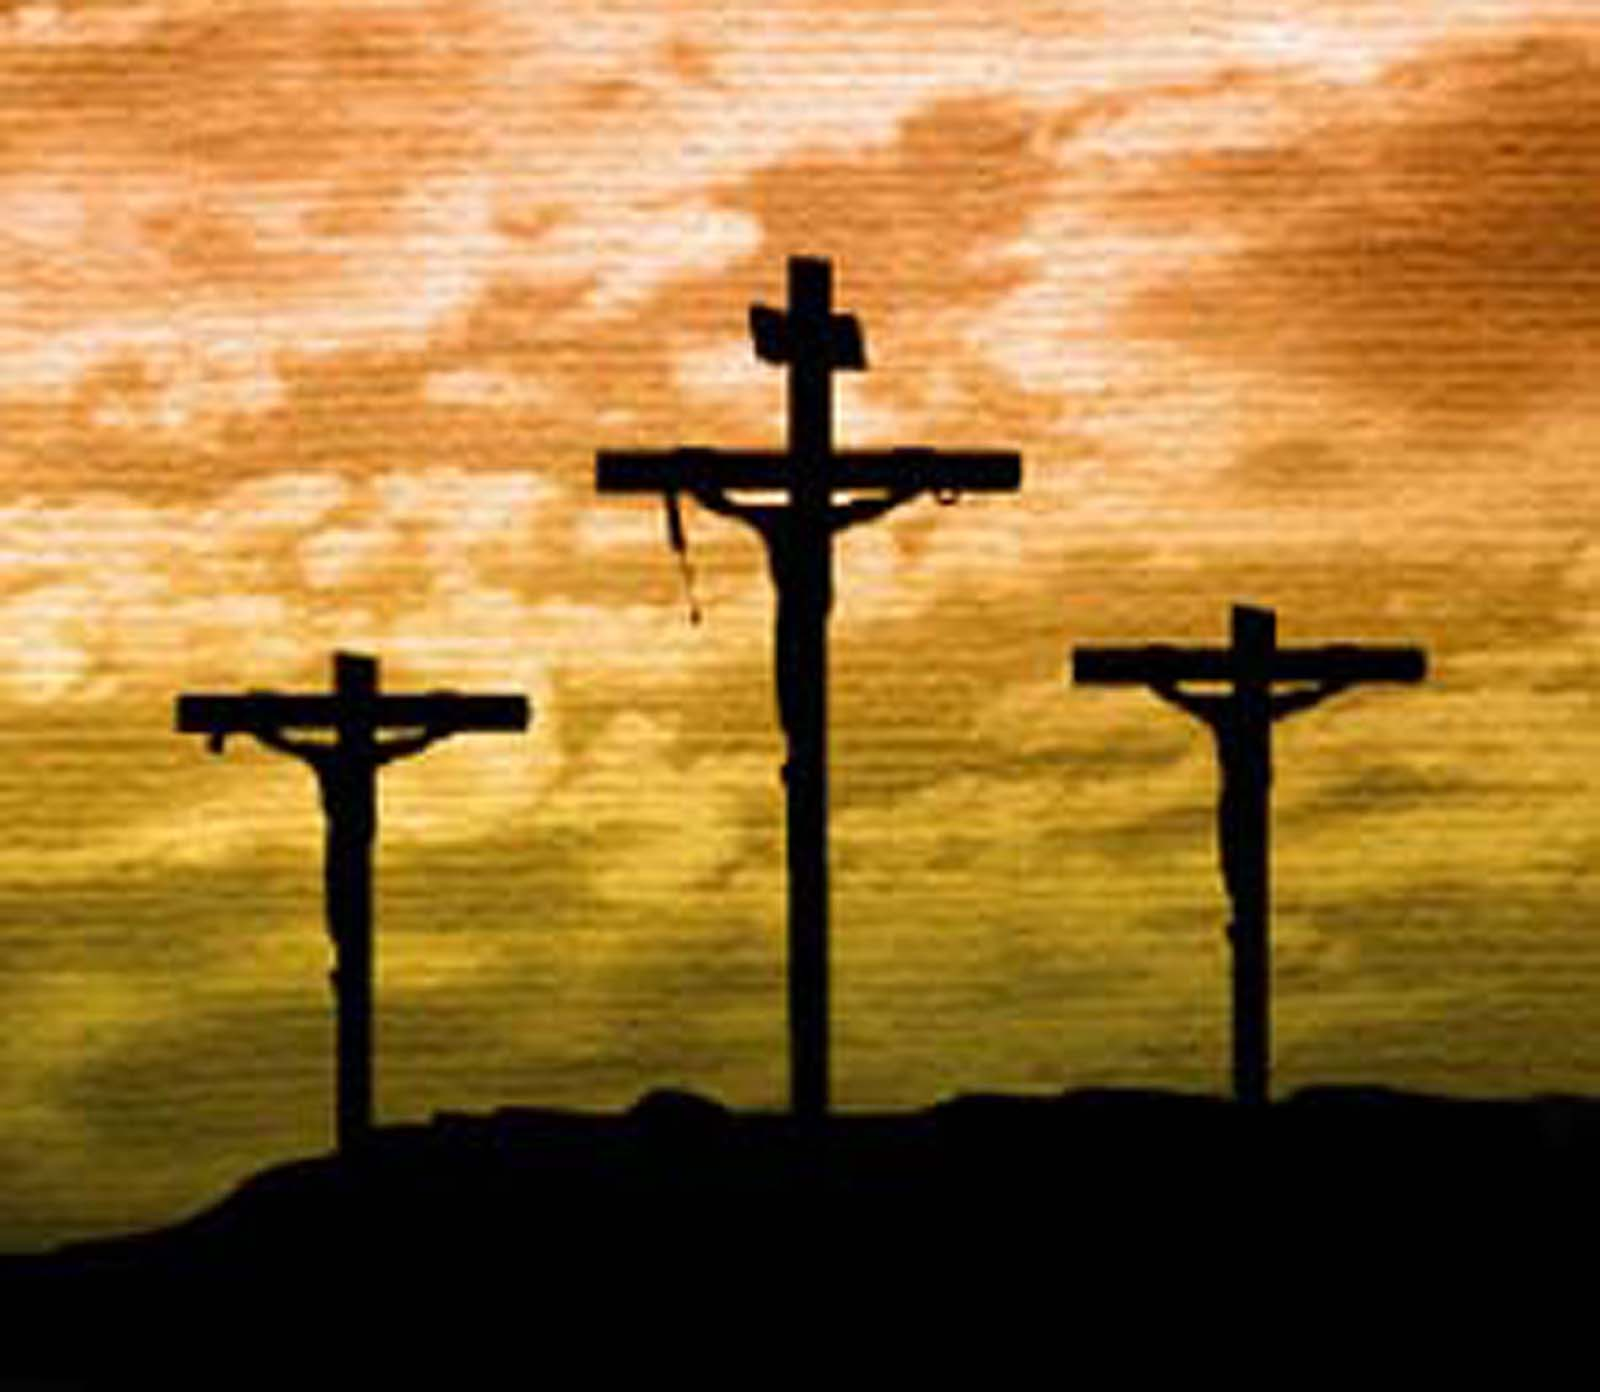 What did Jesus do on the cross?